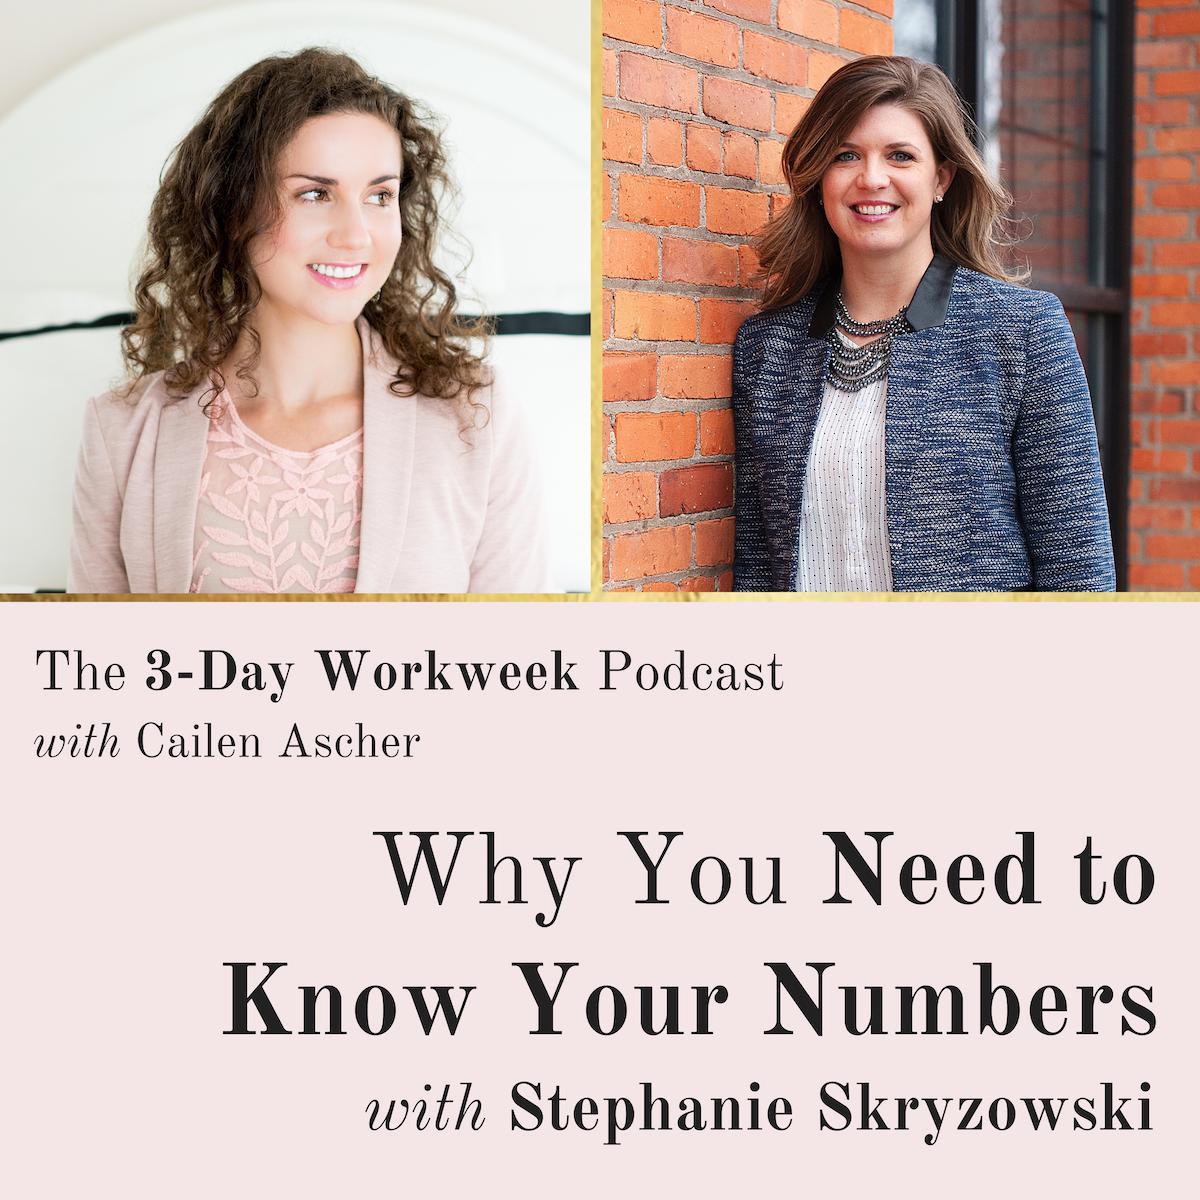 The 3-Day Workweek Podcast with Cailen Ascher - 2019-06-12 - Why You Need to Know Your Numbers with Stephanie Skryzowski.jpg